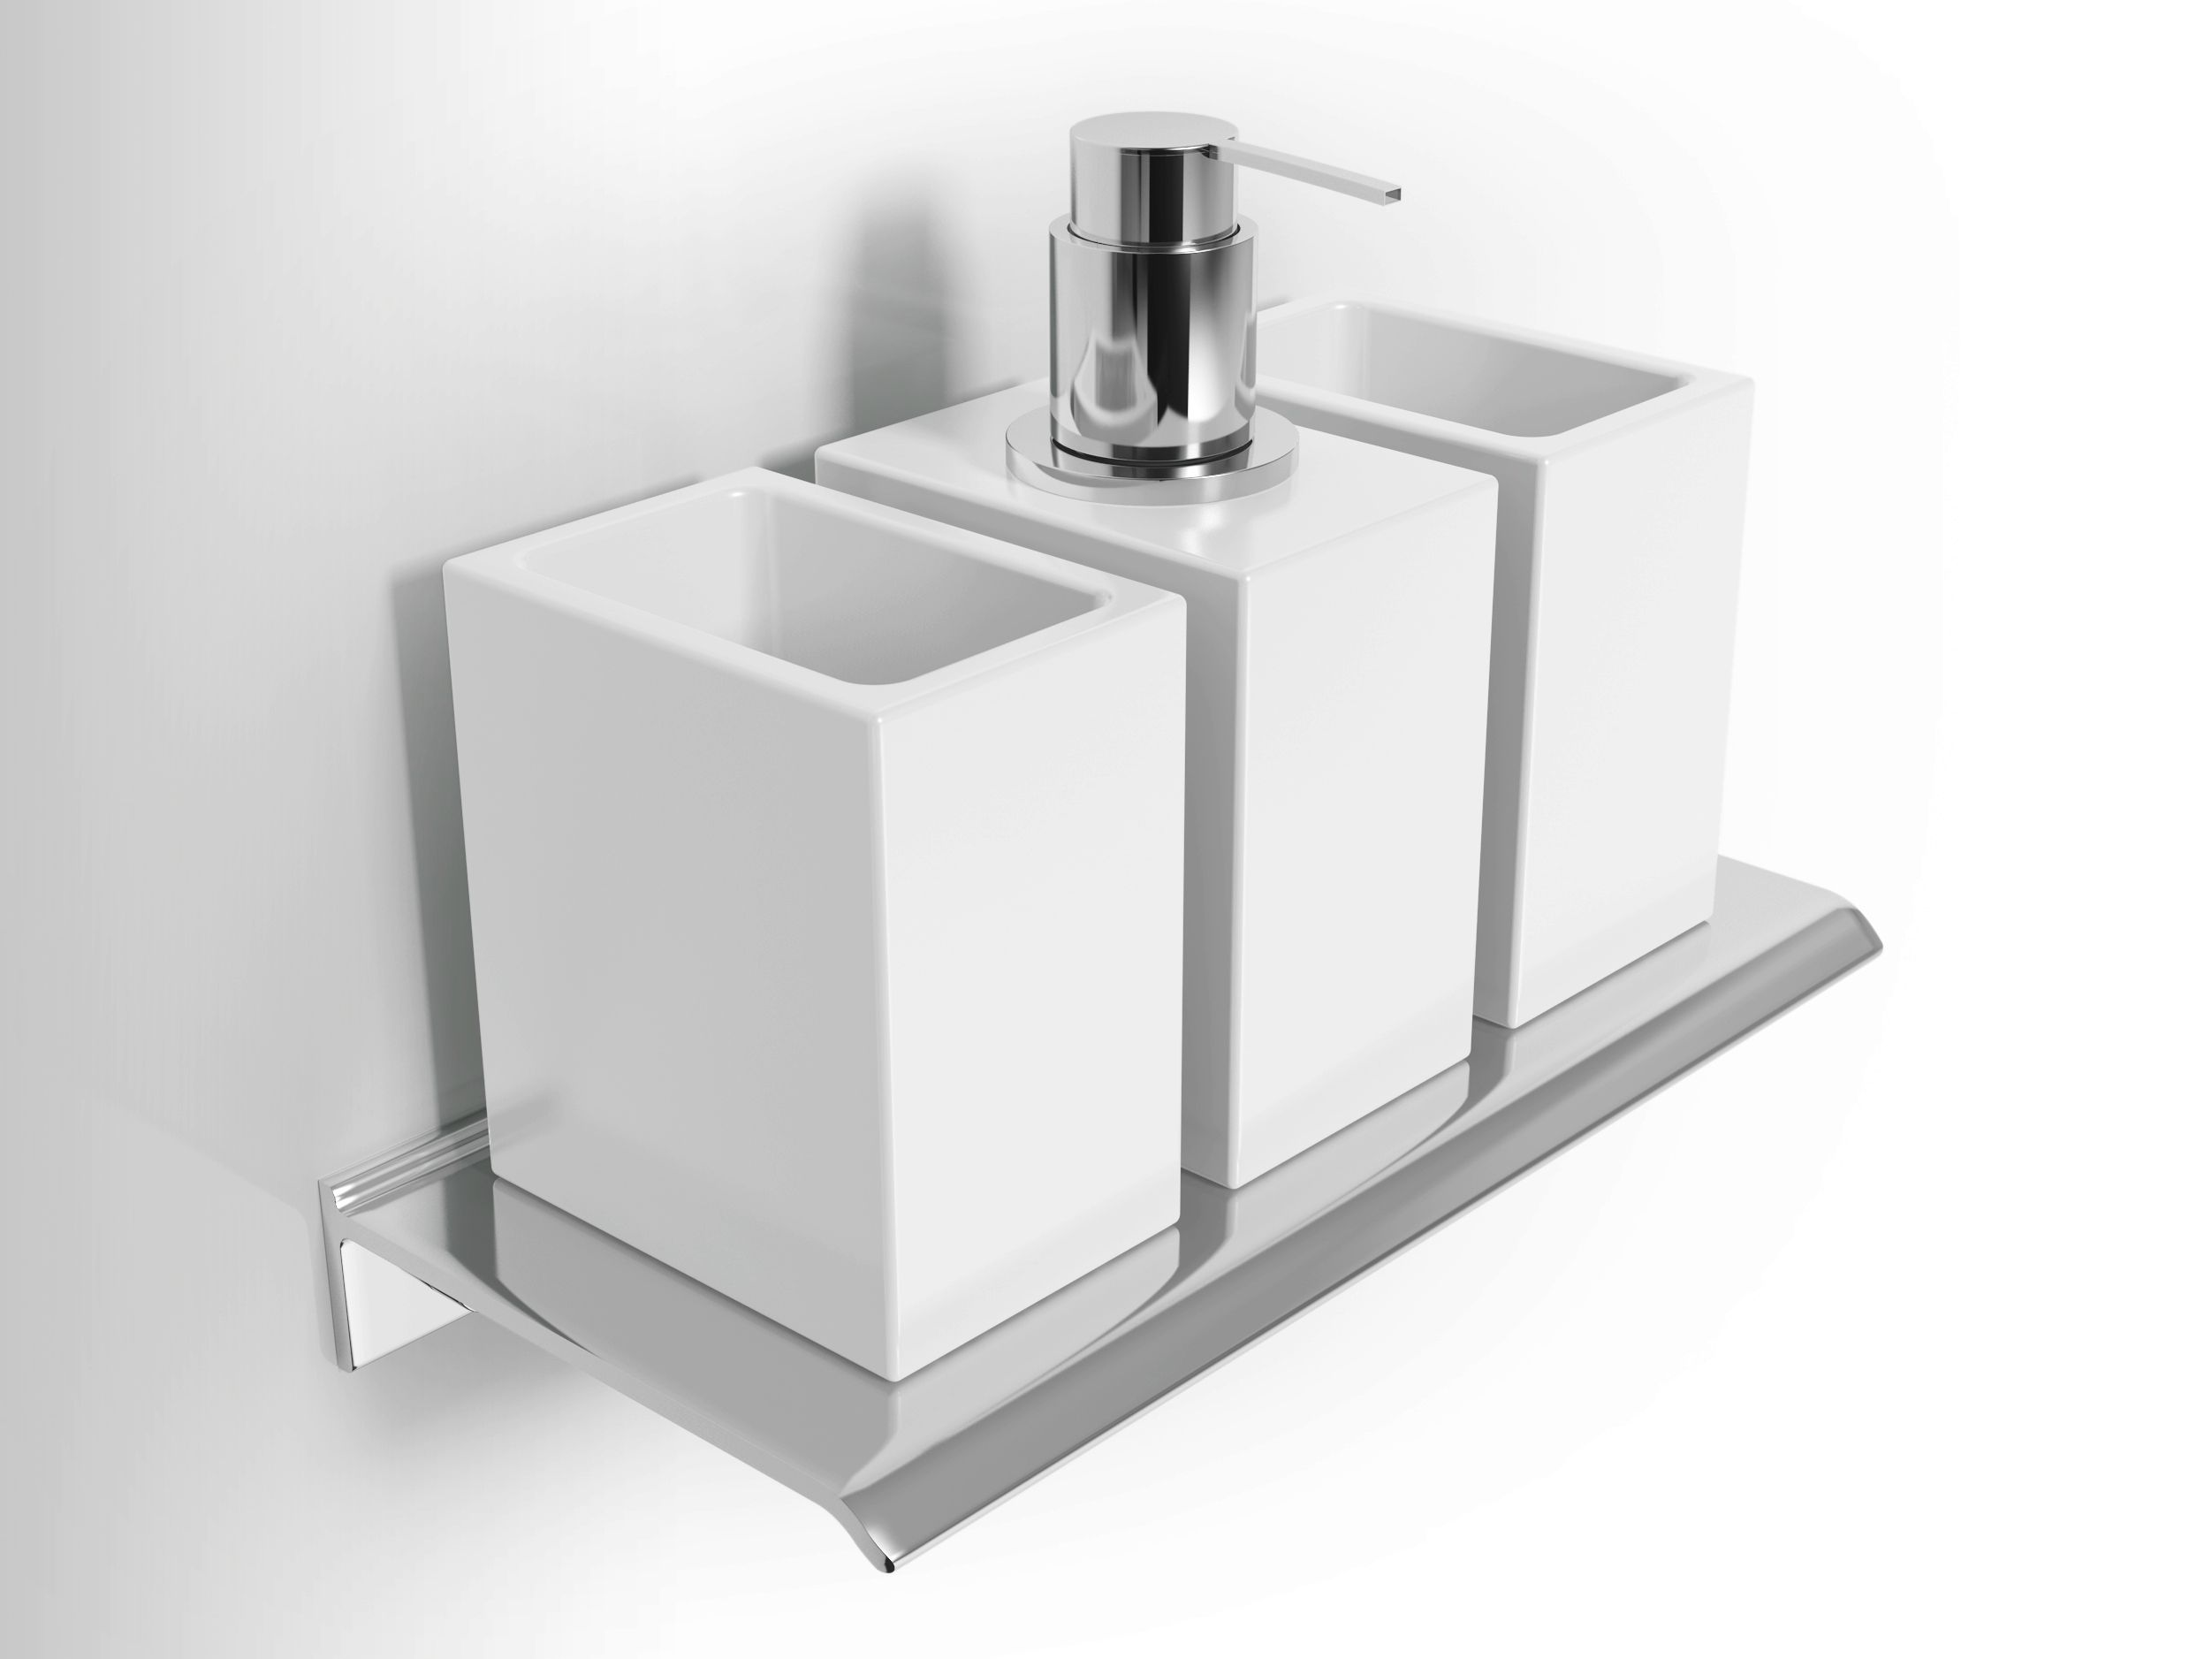 Wall Mounted Soap Dispenser And Toothbrush Holder